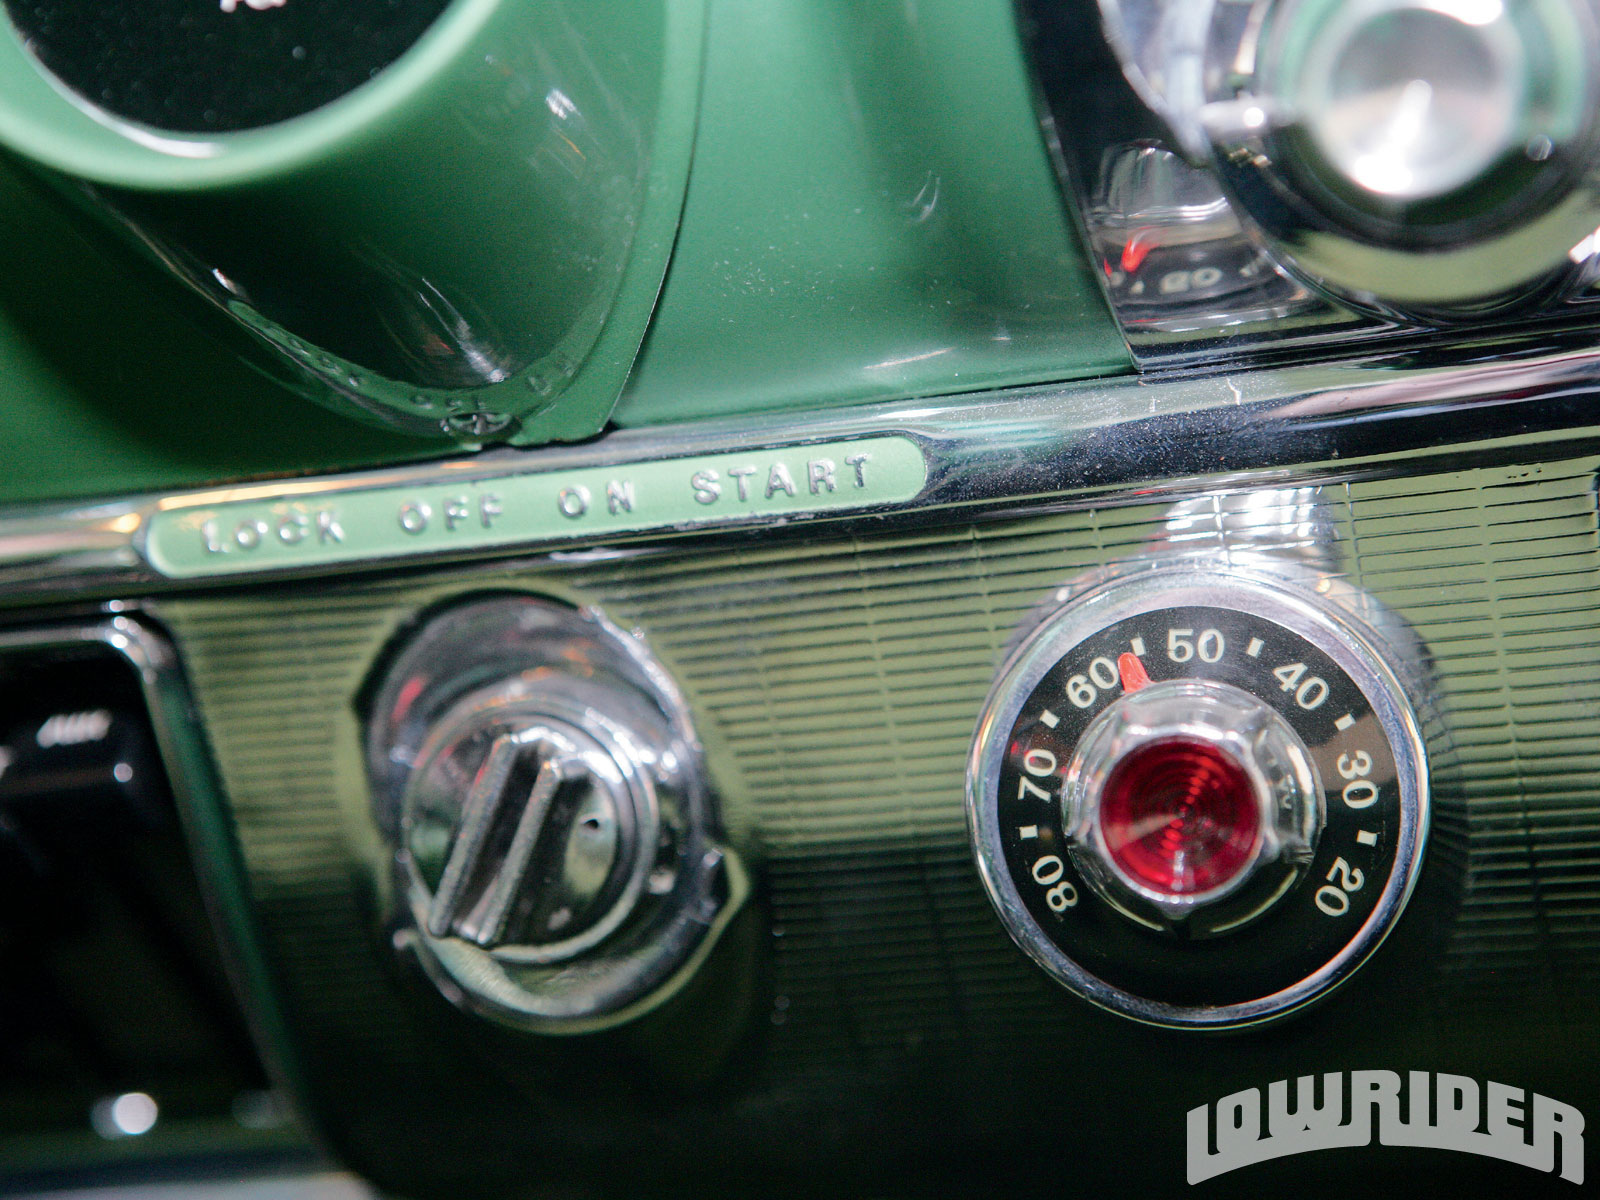 Vintage Car Parts And Accessories - Deluxe - Lowrider Magazine